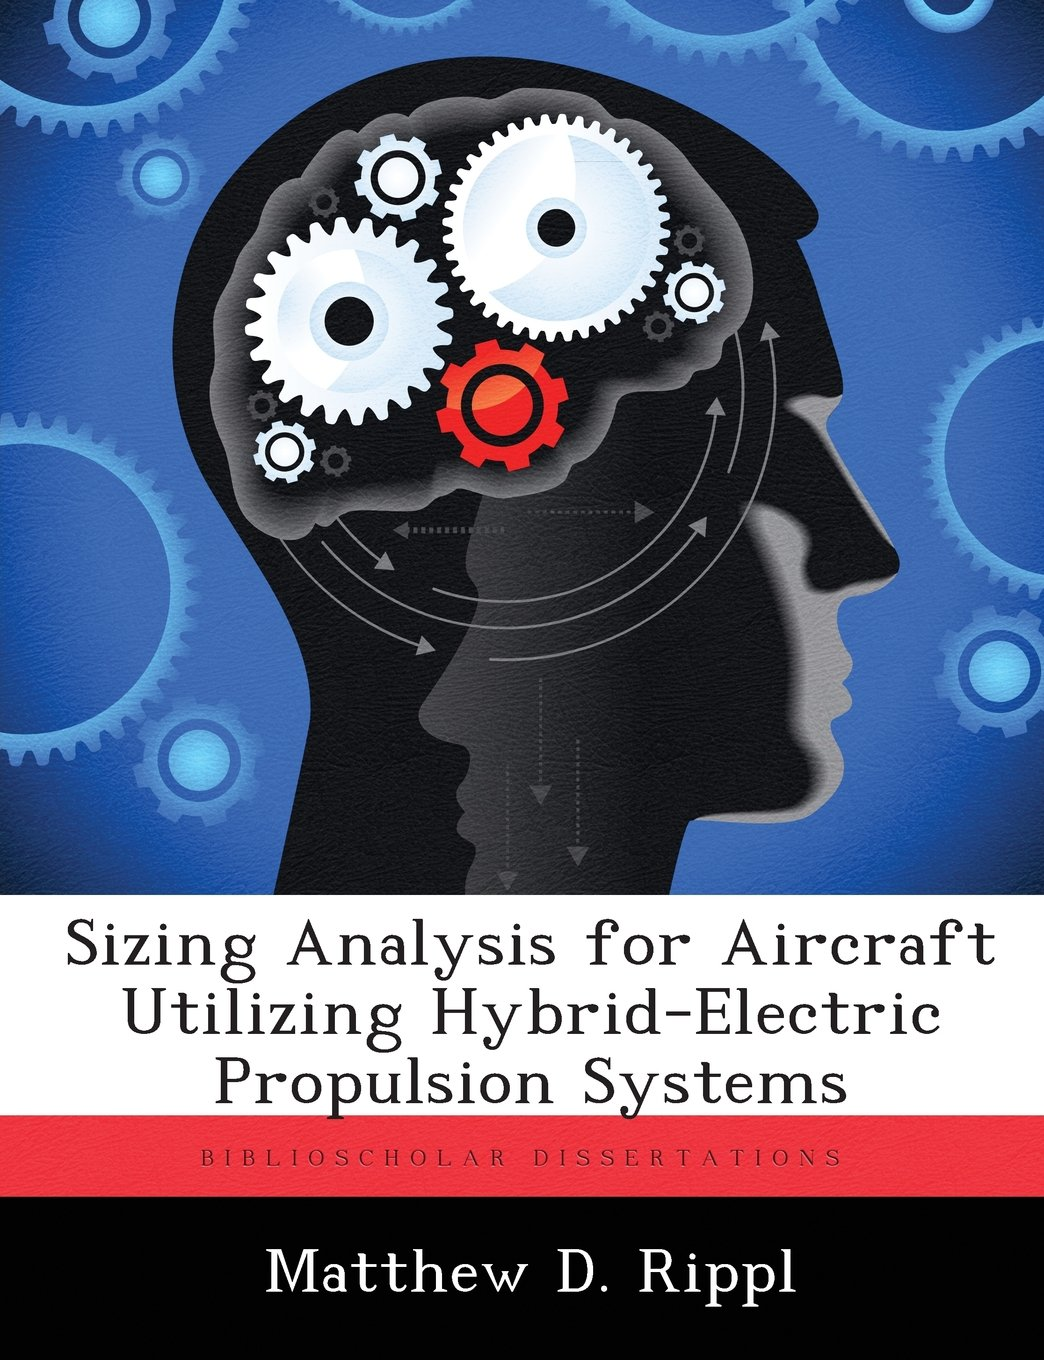 Download Sizing Analysis for Aircraft Utilizing Hybrid-Electric Propulsion Systems PDF